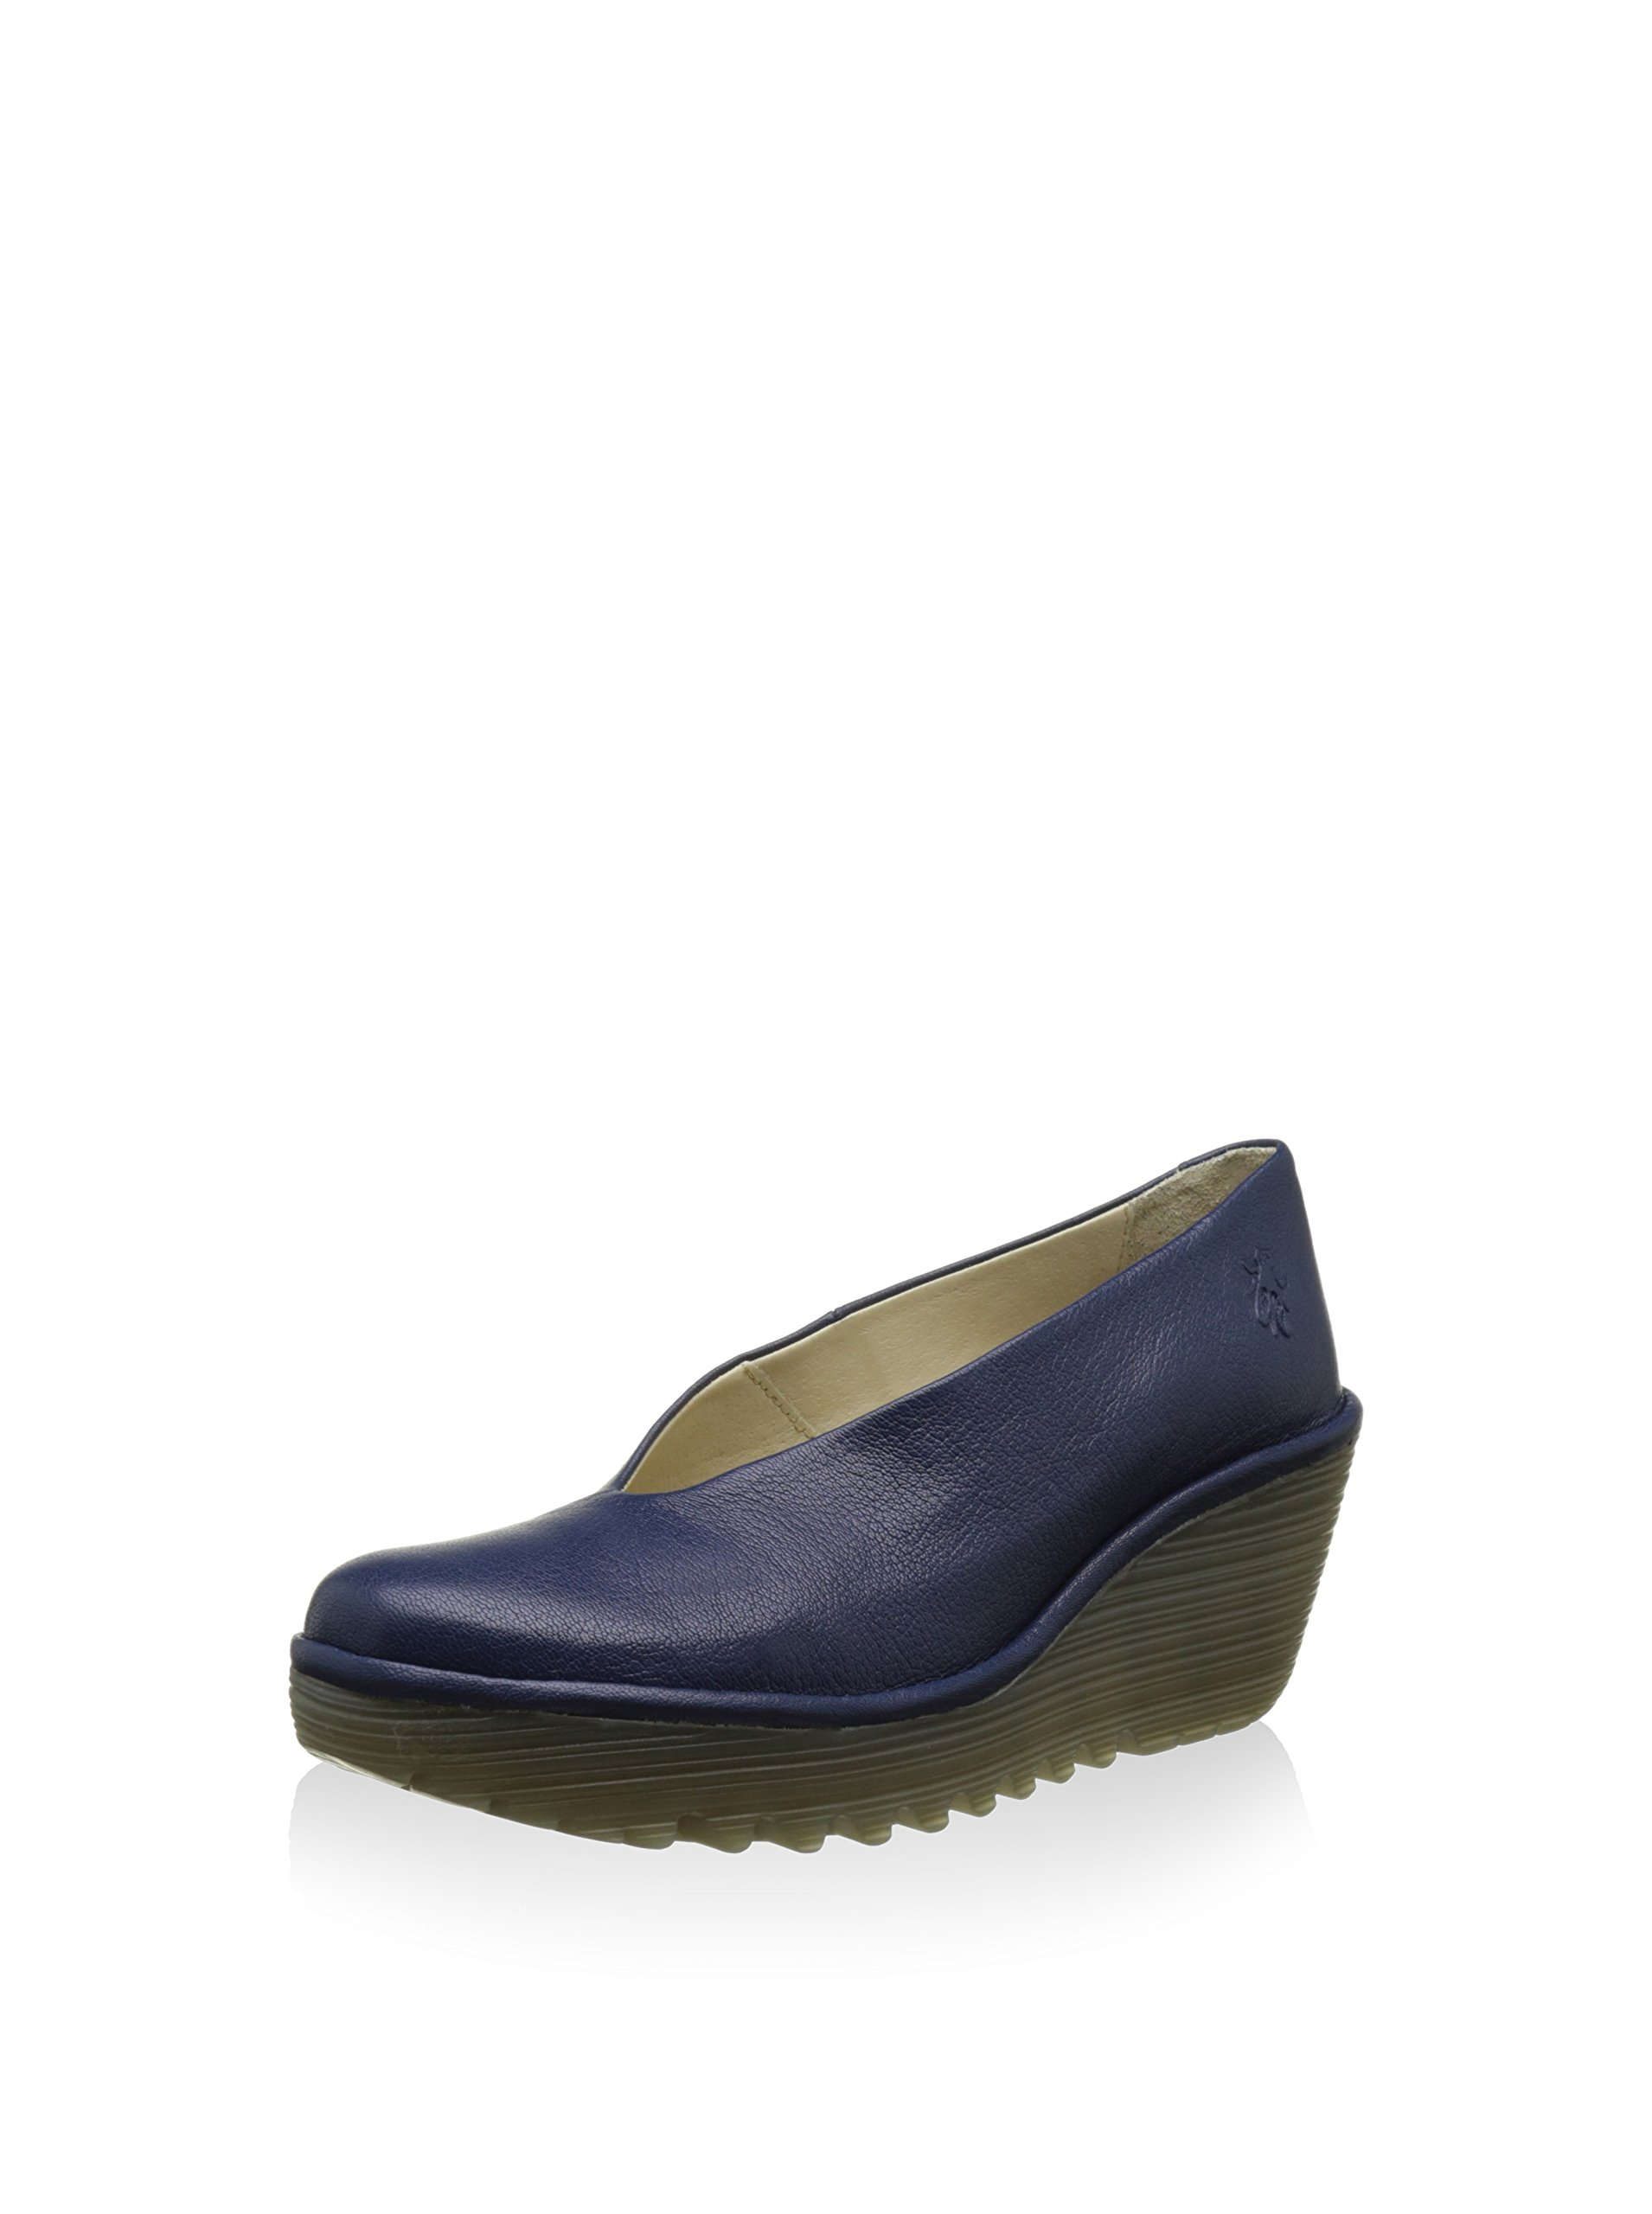 Womens Fly London Yaz Mousse Summer Leather Casual Work Shoes Wedge Heel - Blue - 10